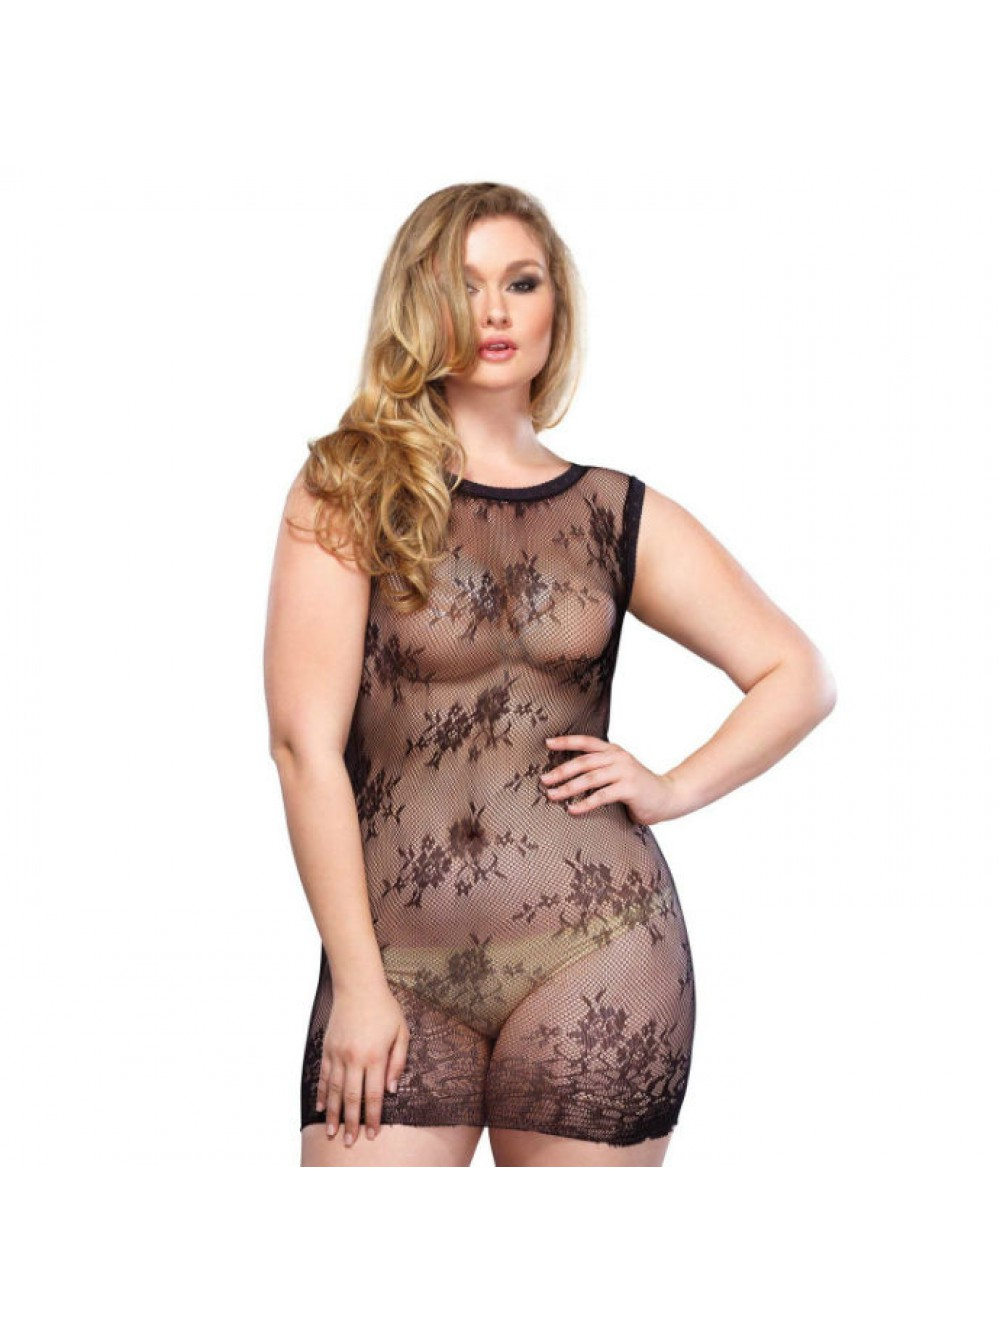 LEG AVENUE FLORAL LACE MINI DRESS PLUS SIZE